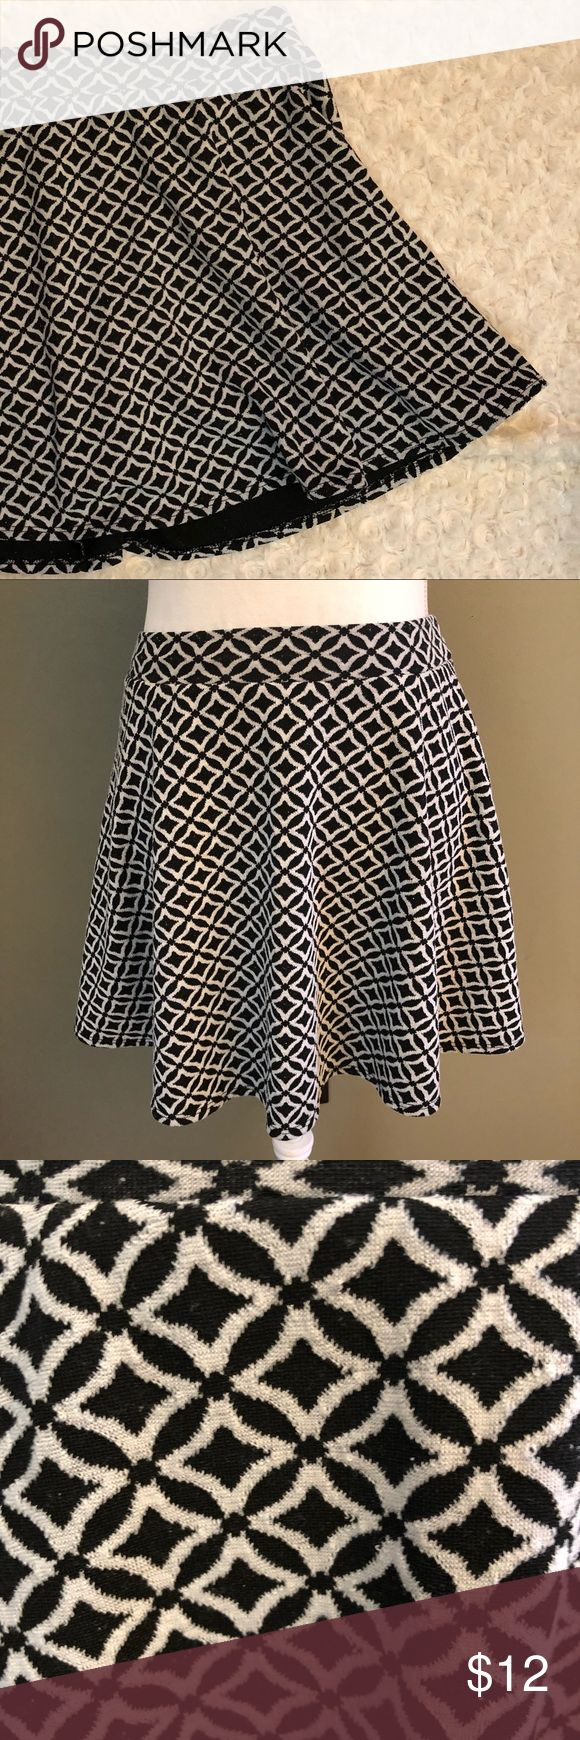 """Joe B Skater Skirt Flirty and sweet! This pattern stands out in the best way possible. Great with leggings and heels.   Measurements are taken flat and an approximation: Length: 15.5"""" Waist: 13"""" Circumference: 72""""  Please feel free to ask questions or make an offer! Joe B Skirts Circle & Skater"""